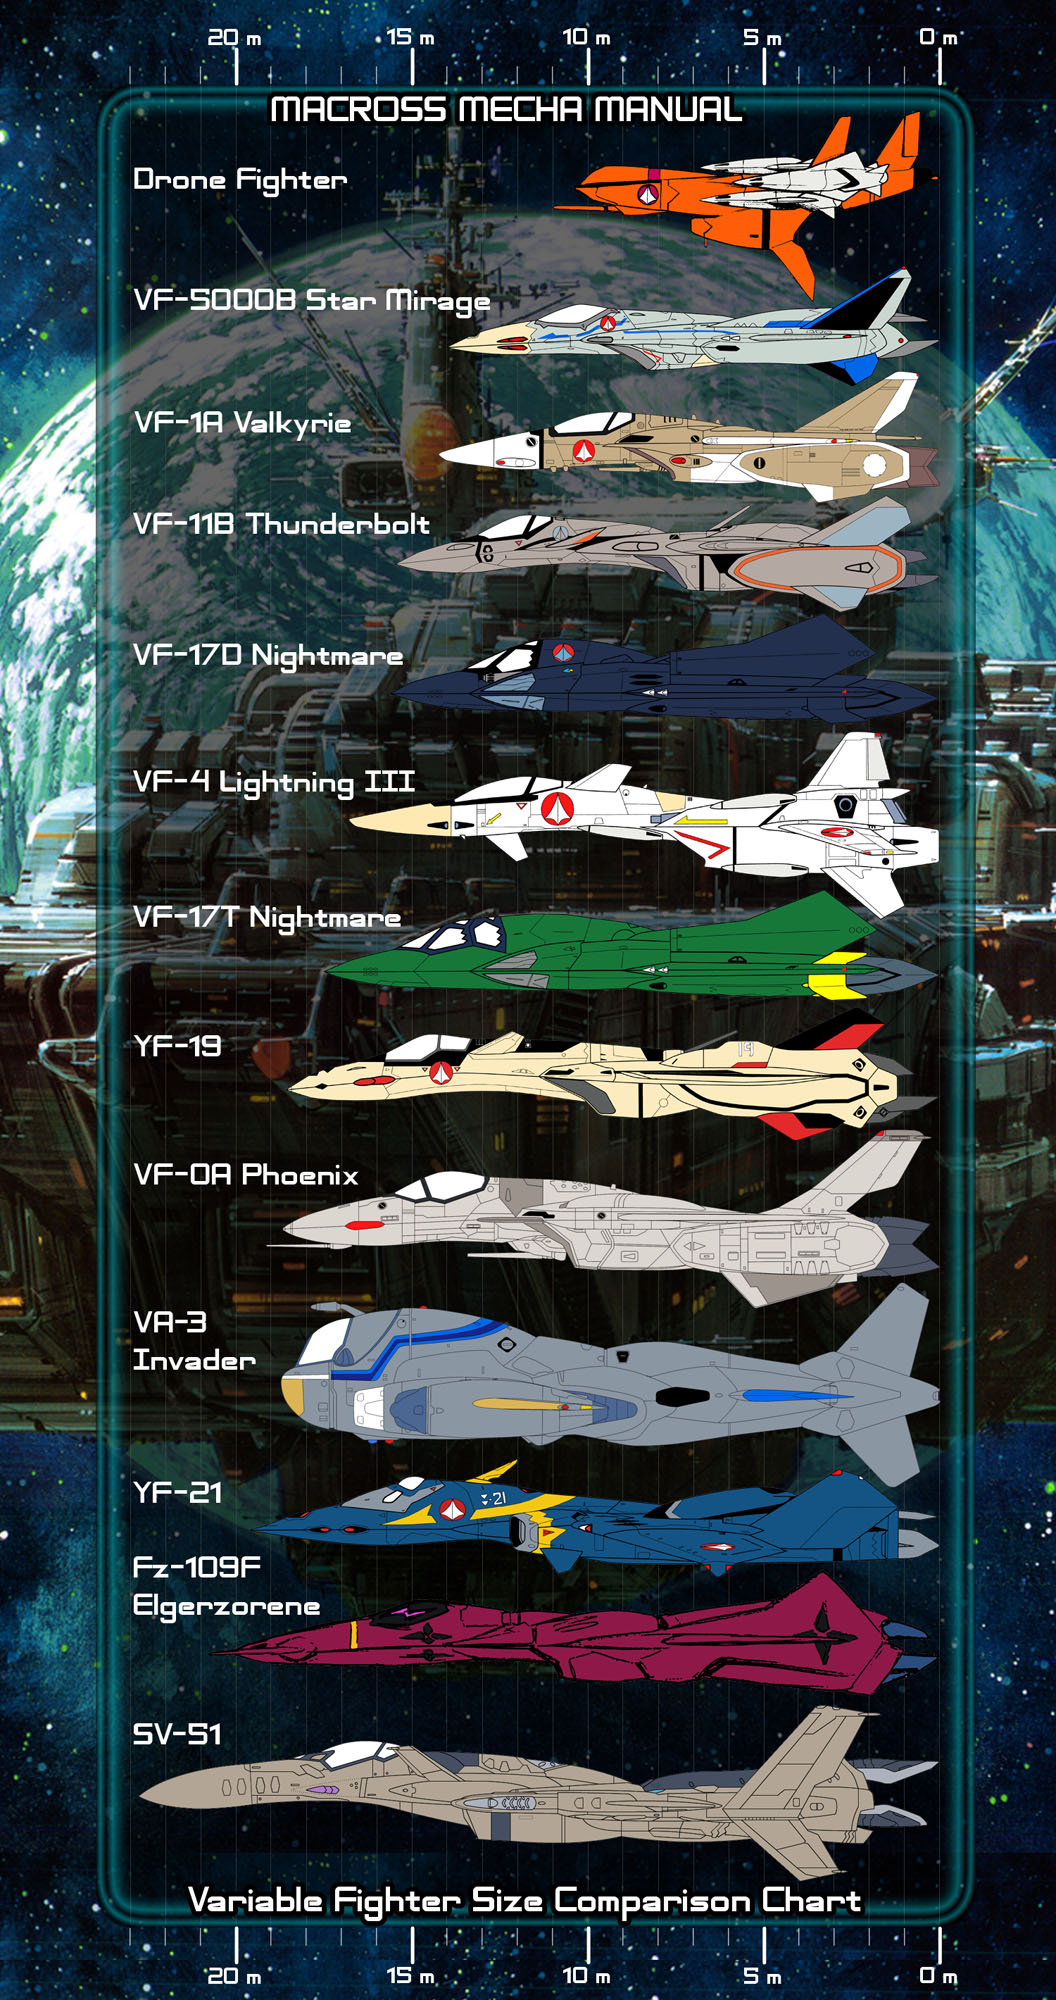 sizechart-valkyries-detailed2000.jpg